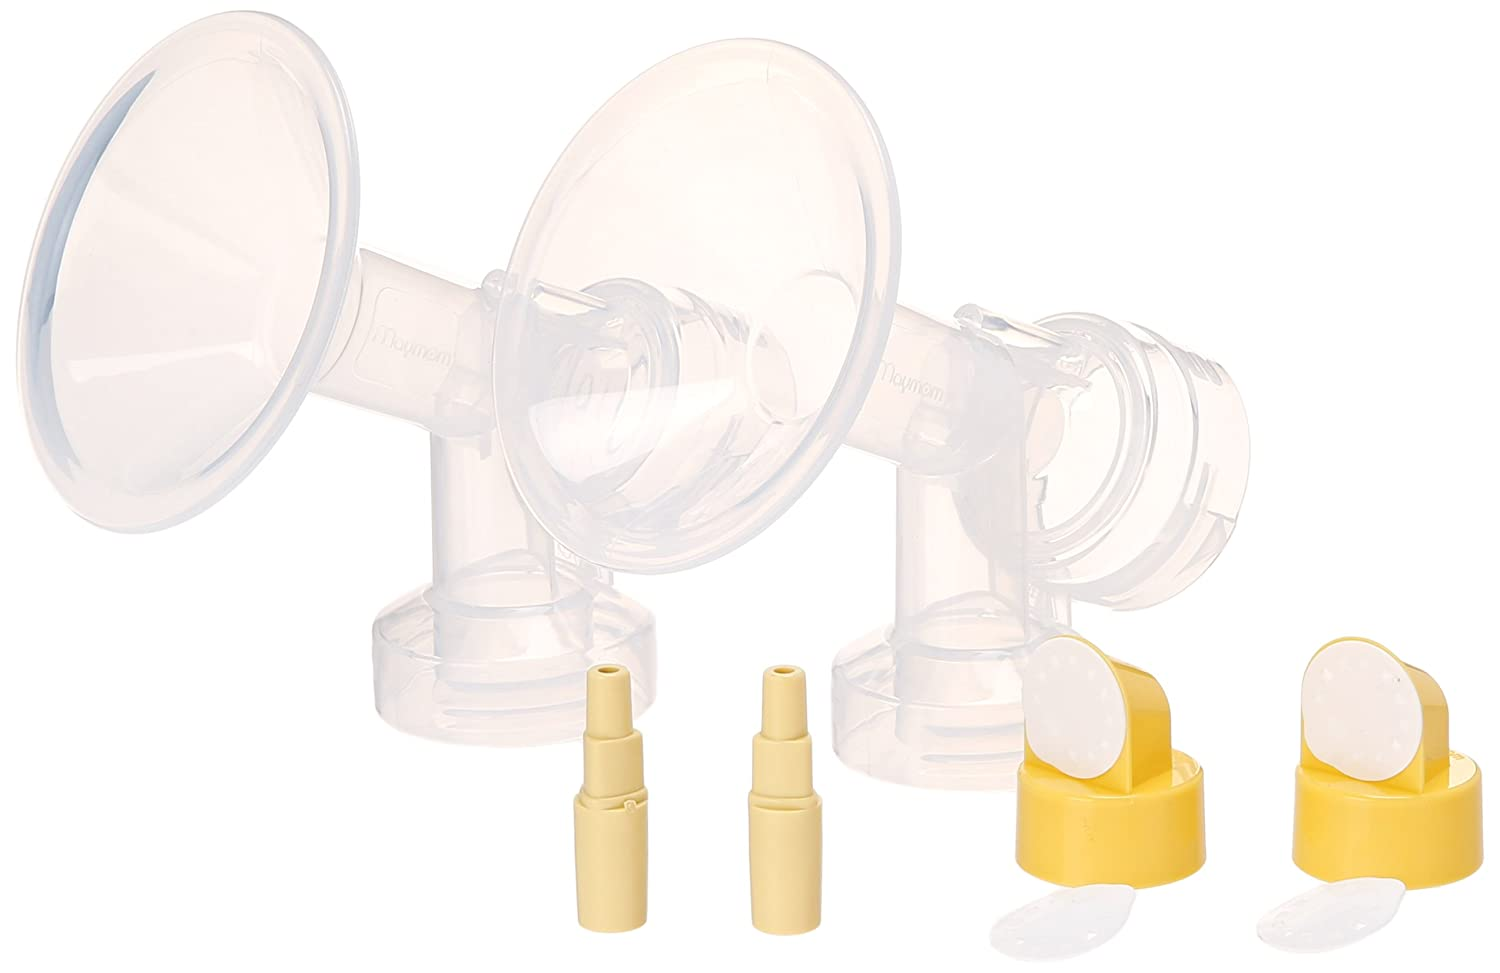 Maymom Backflow Adapter for Spectra S1, Spectra S2, Spectra 9, 9Plus Pump; Spectra Adapter to Use Medela Flanges and Bottles